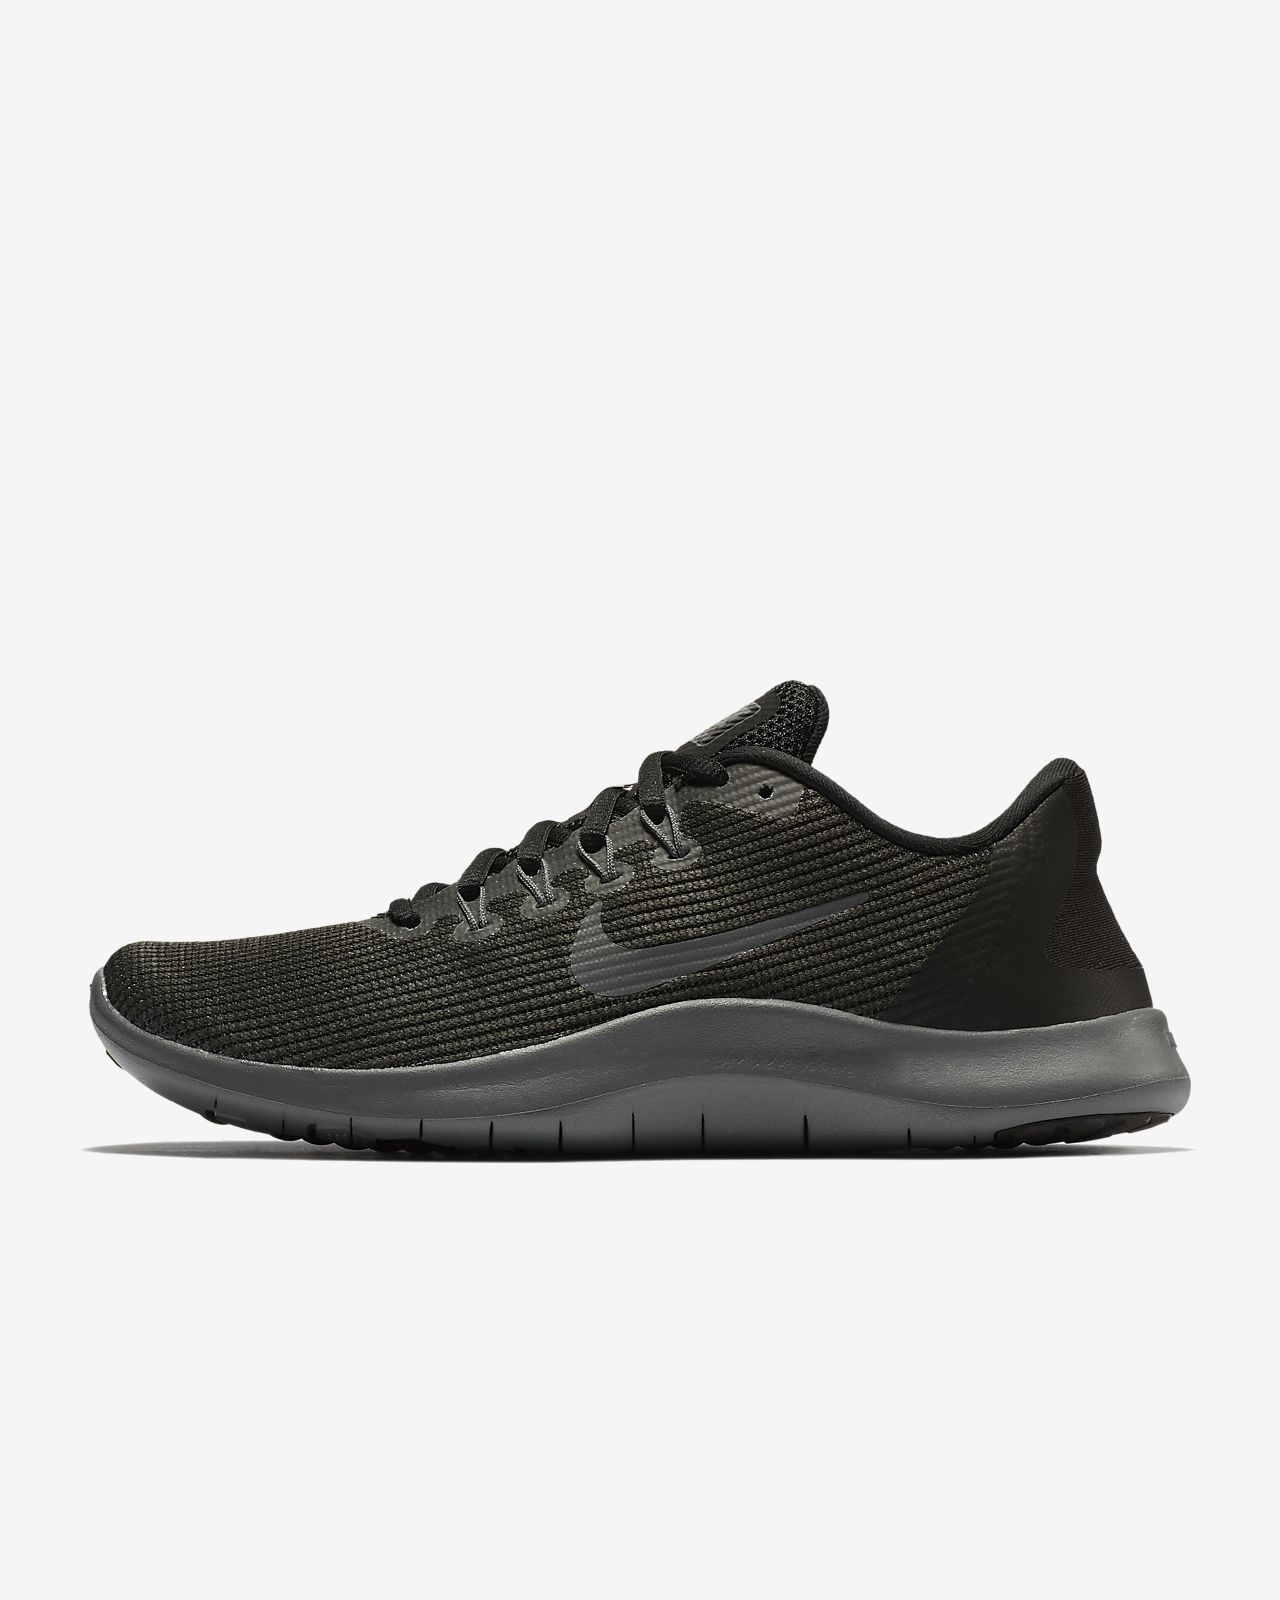 cheap for discount 613a4 4f91b nike flex rn 2018 des chaussures de course.nike.com       Mende